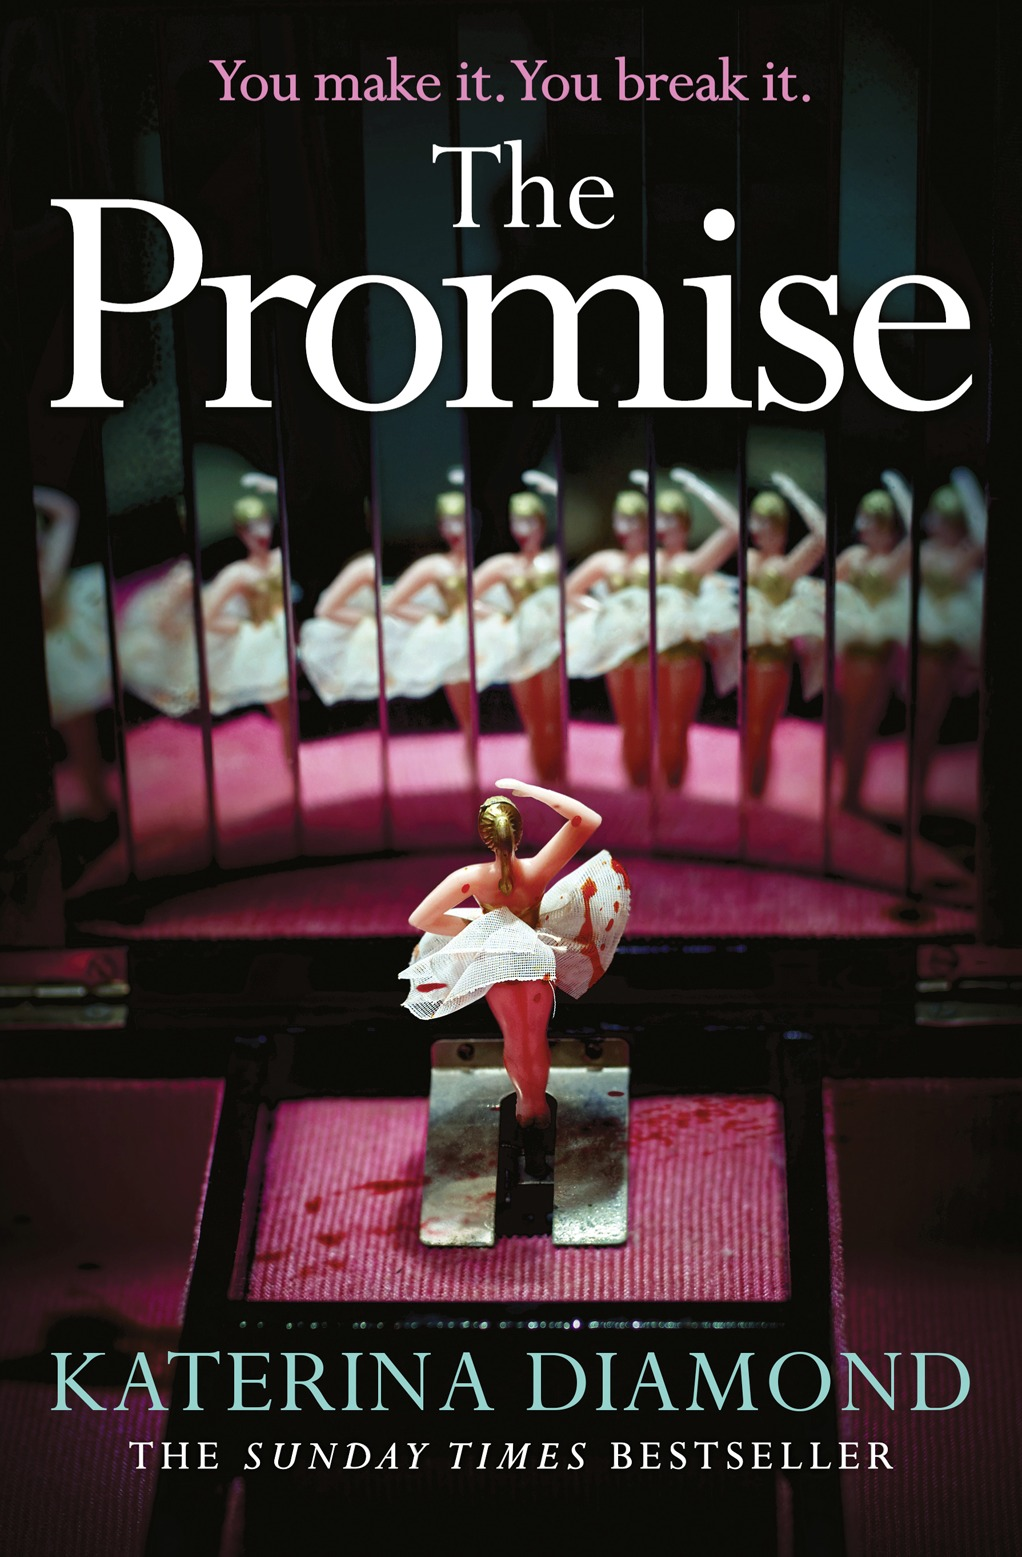 Katerina Diamond The Promise: The twisty new thriller from the Sunday Times bestseller, guaranteed to keep you up all night jd mcpherson jd mcpherson let the good times roll